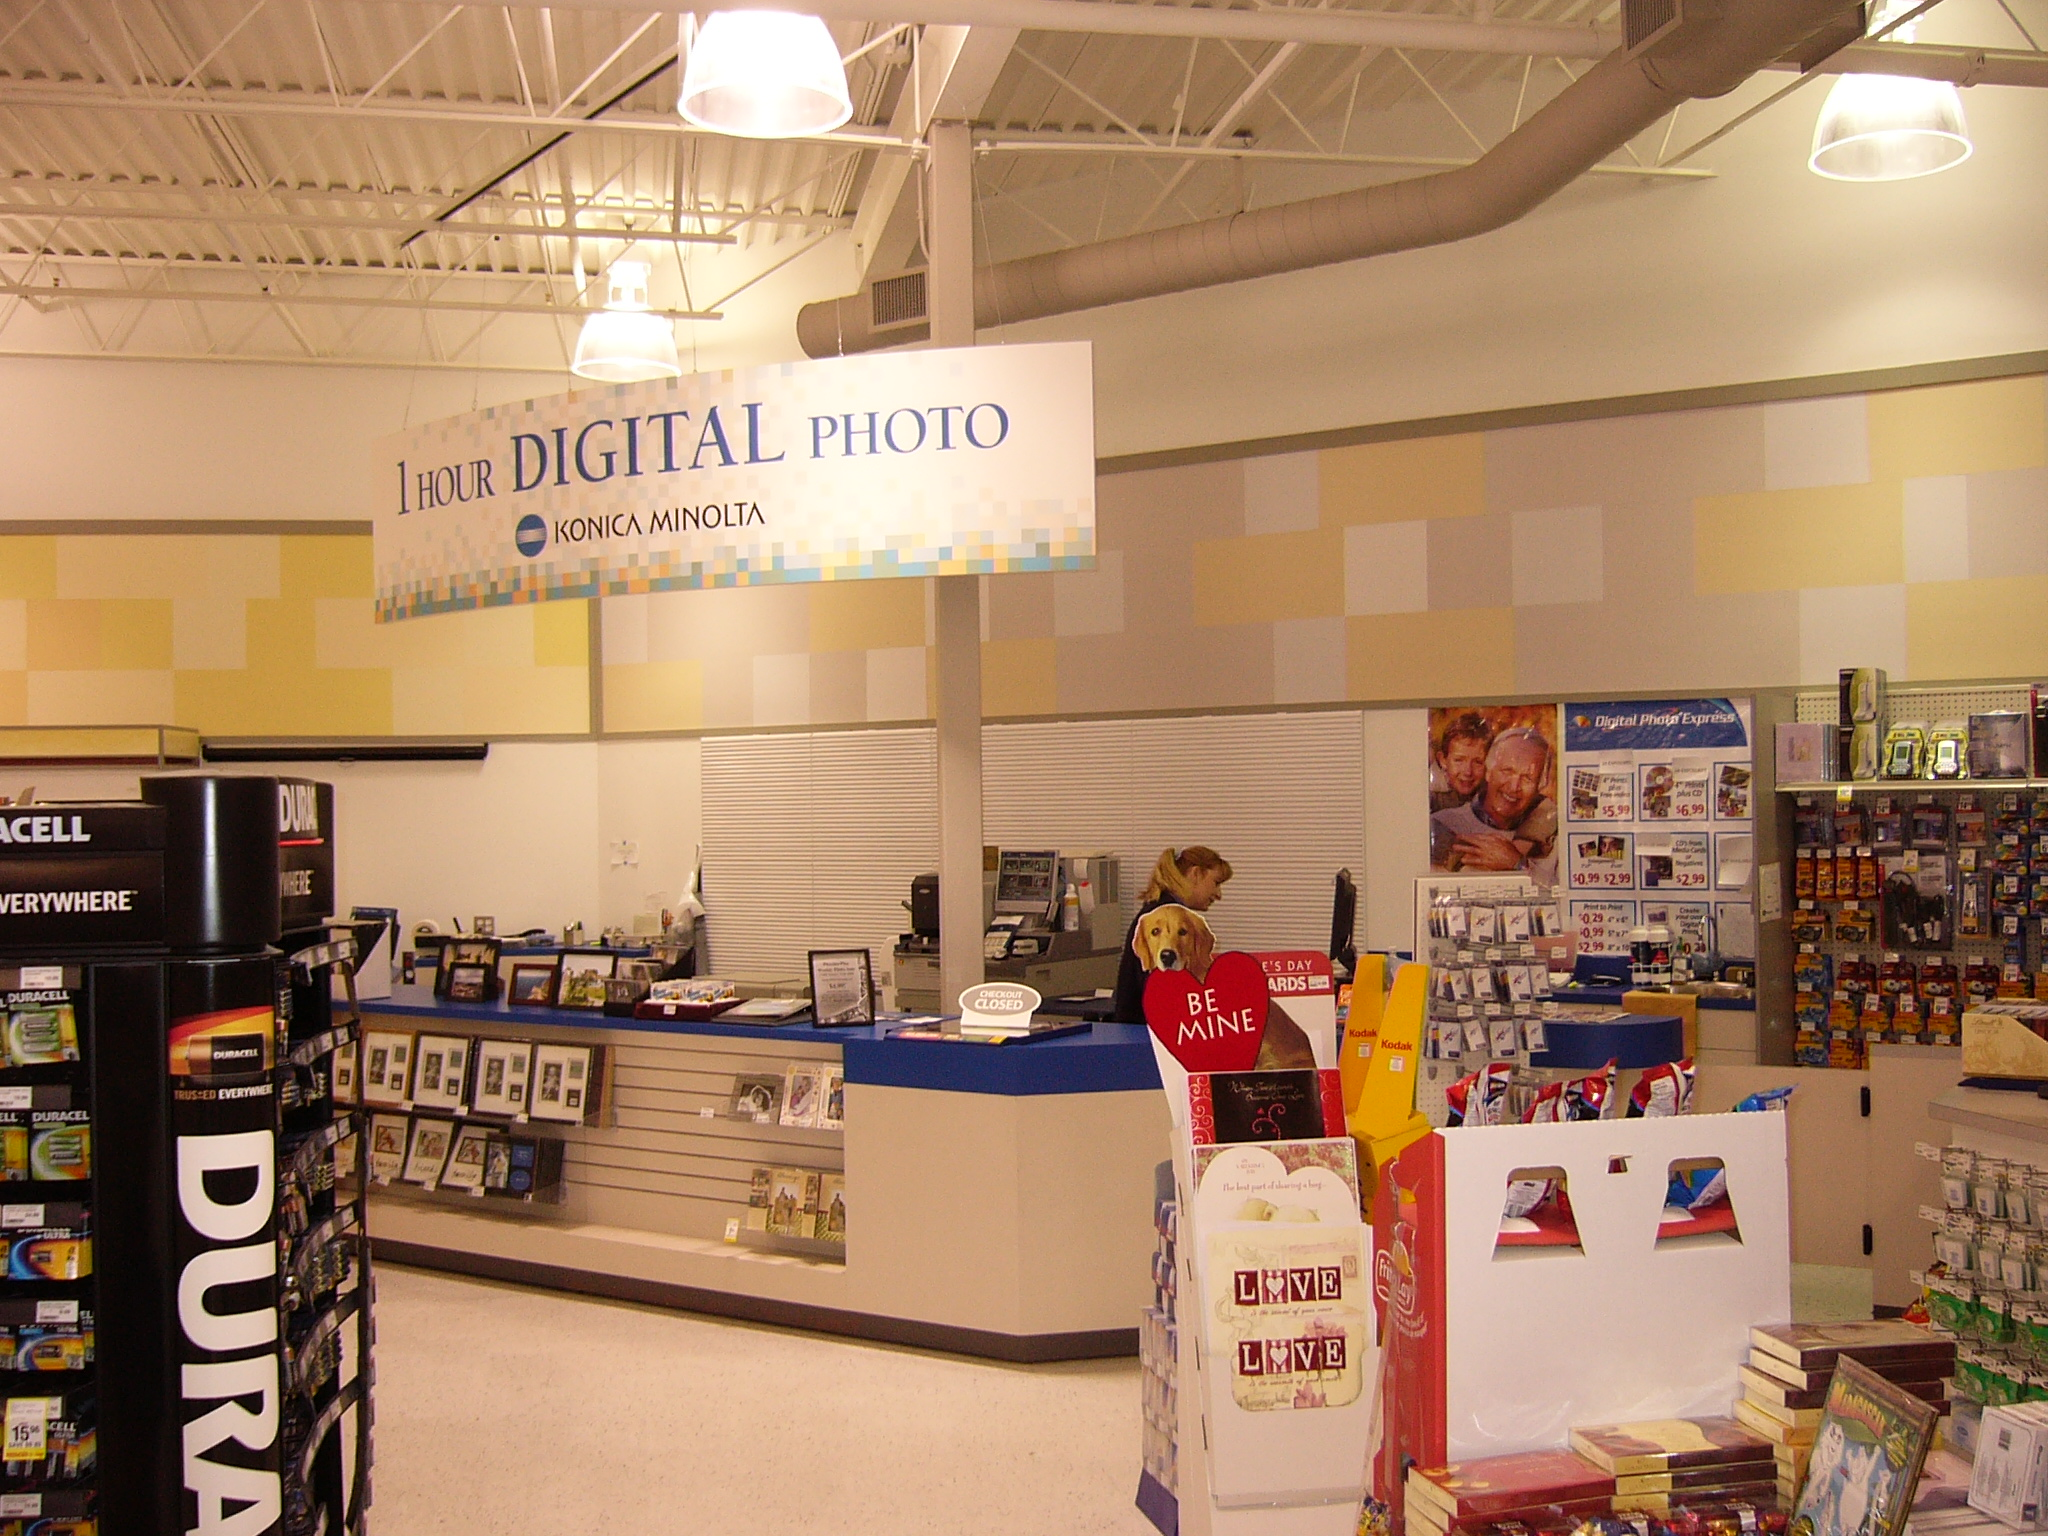 Pharma Plus, 611 Wonderland Rd. N., signage 003.jpg